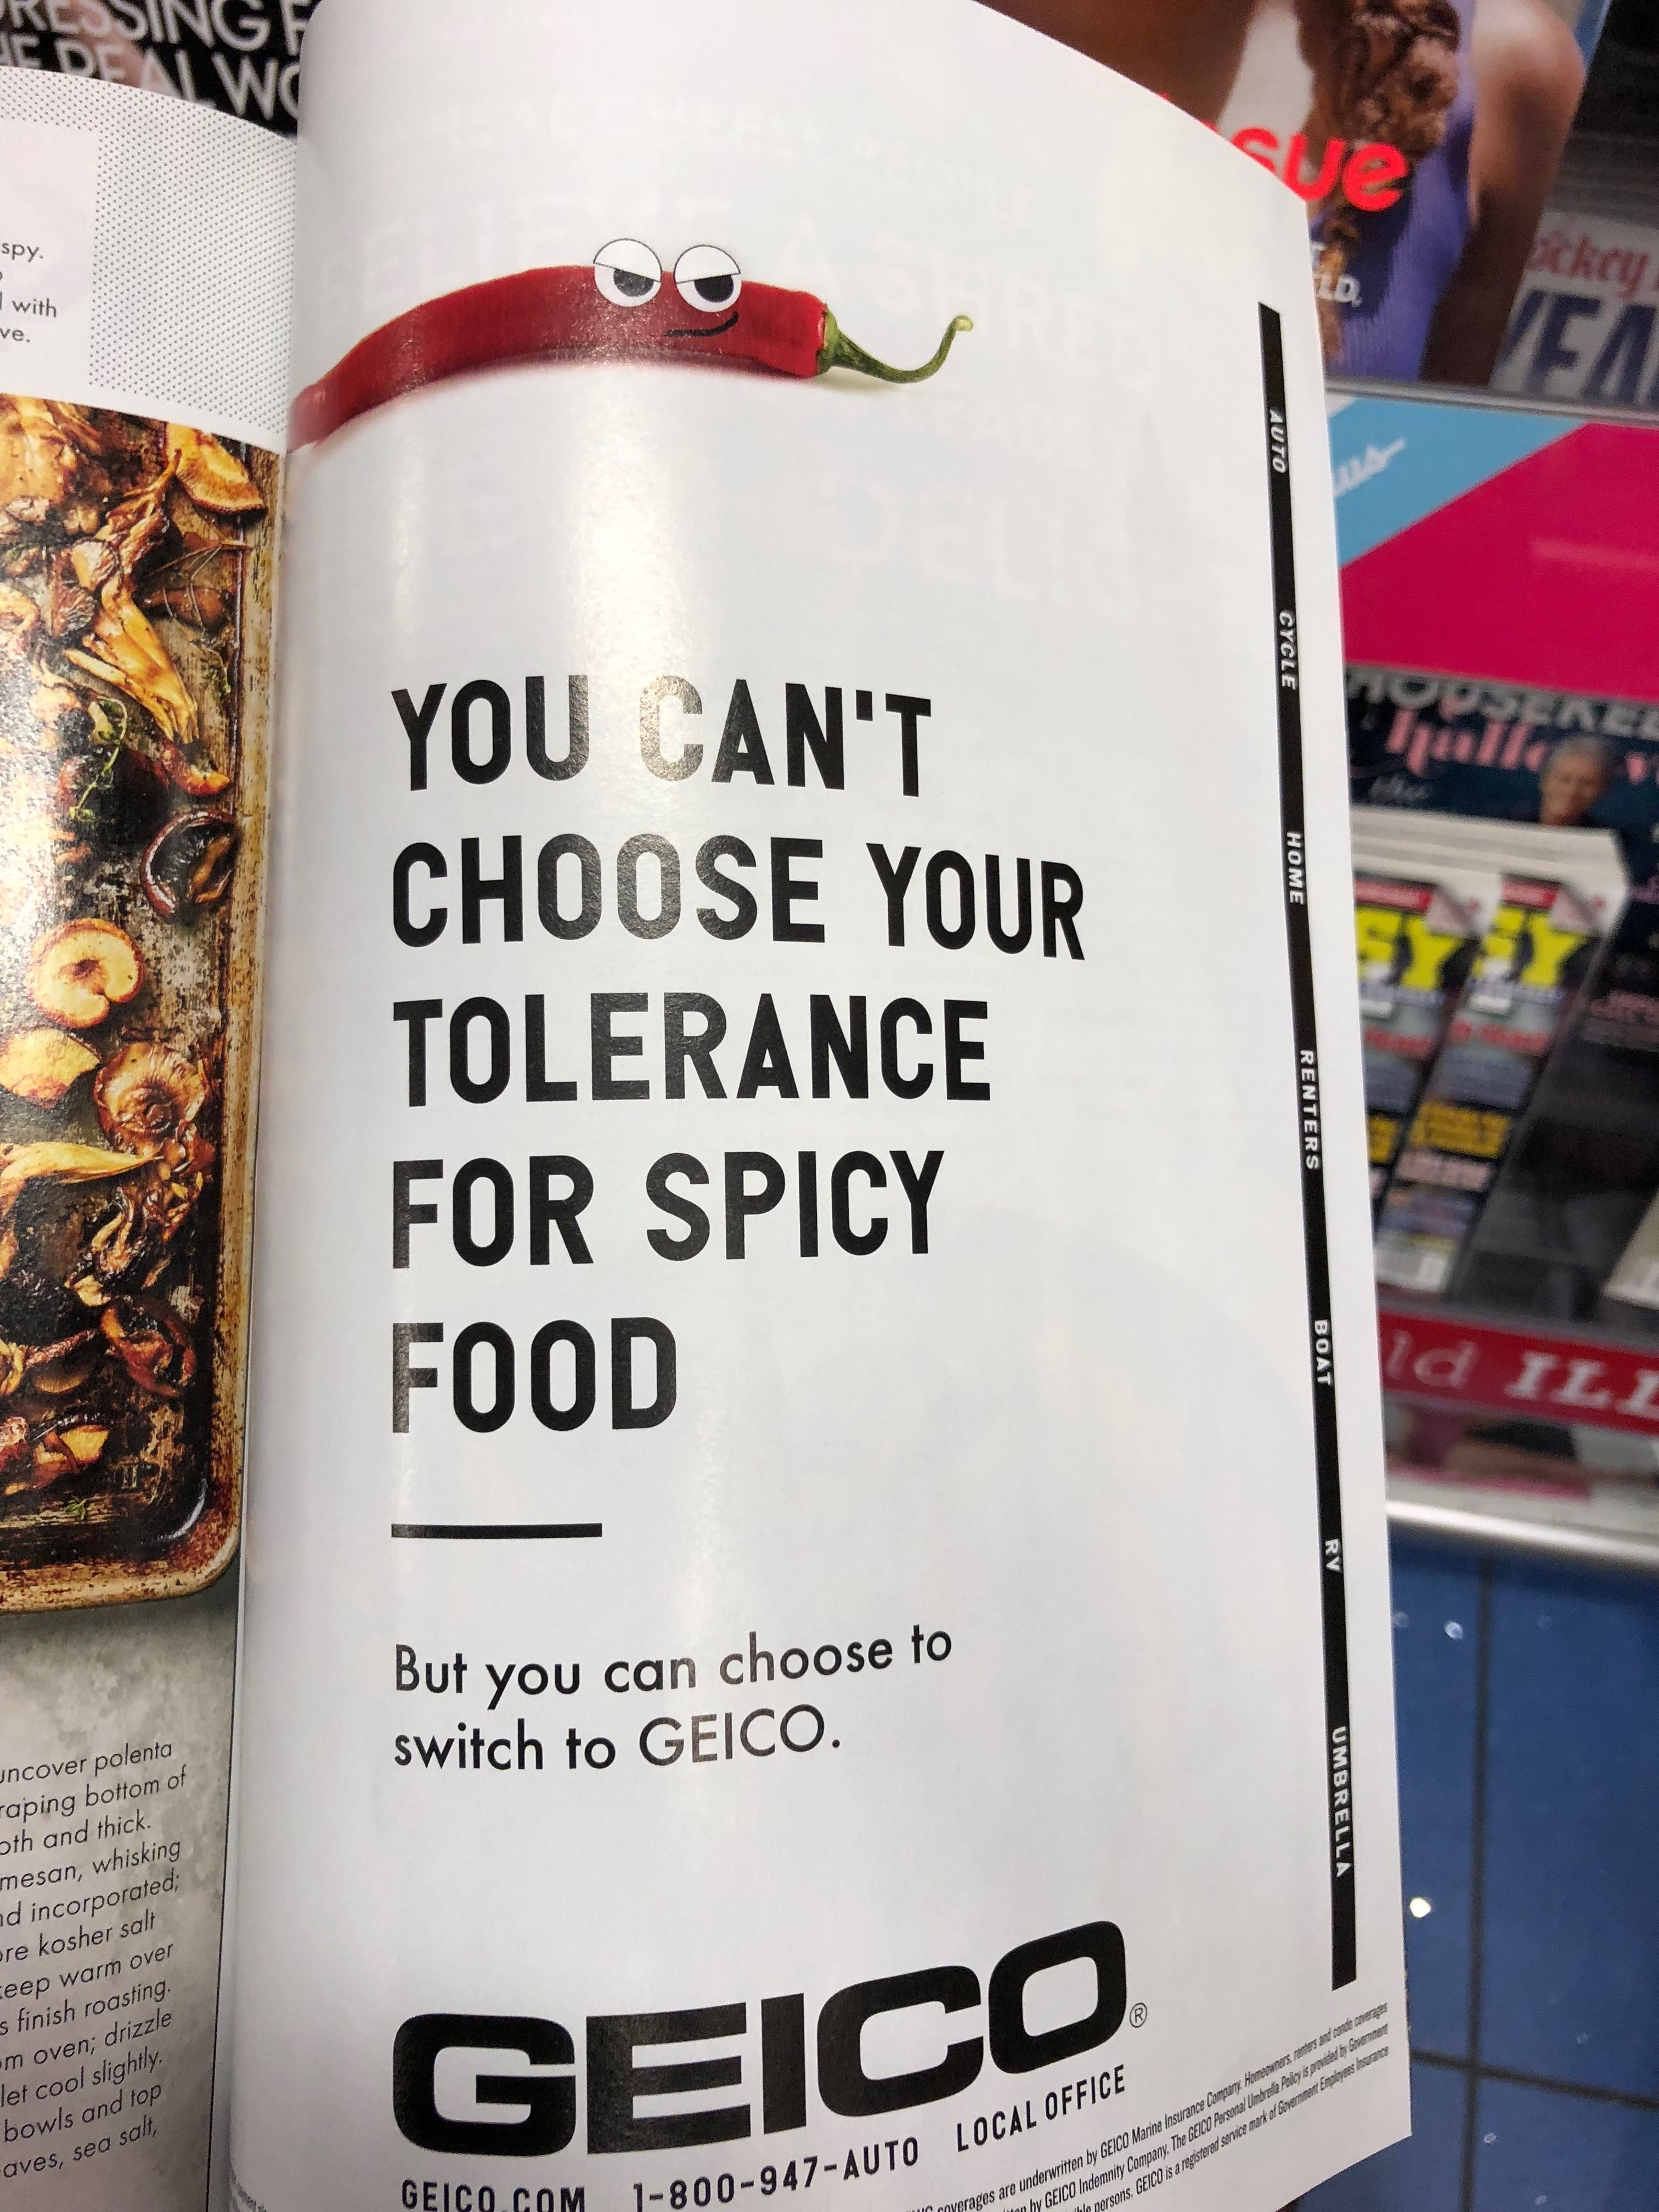 Pin by Alex Becker on VO Reel Spicy recipes, Tolerance